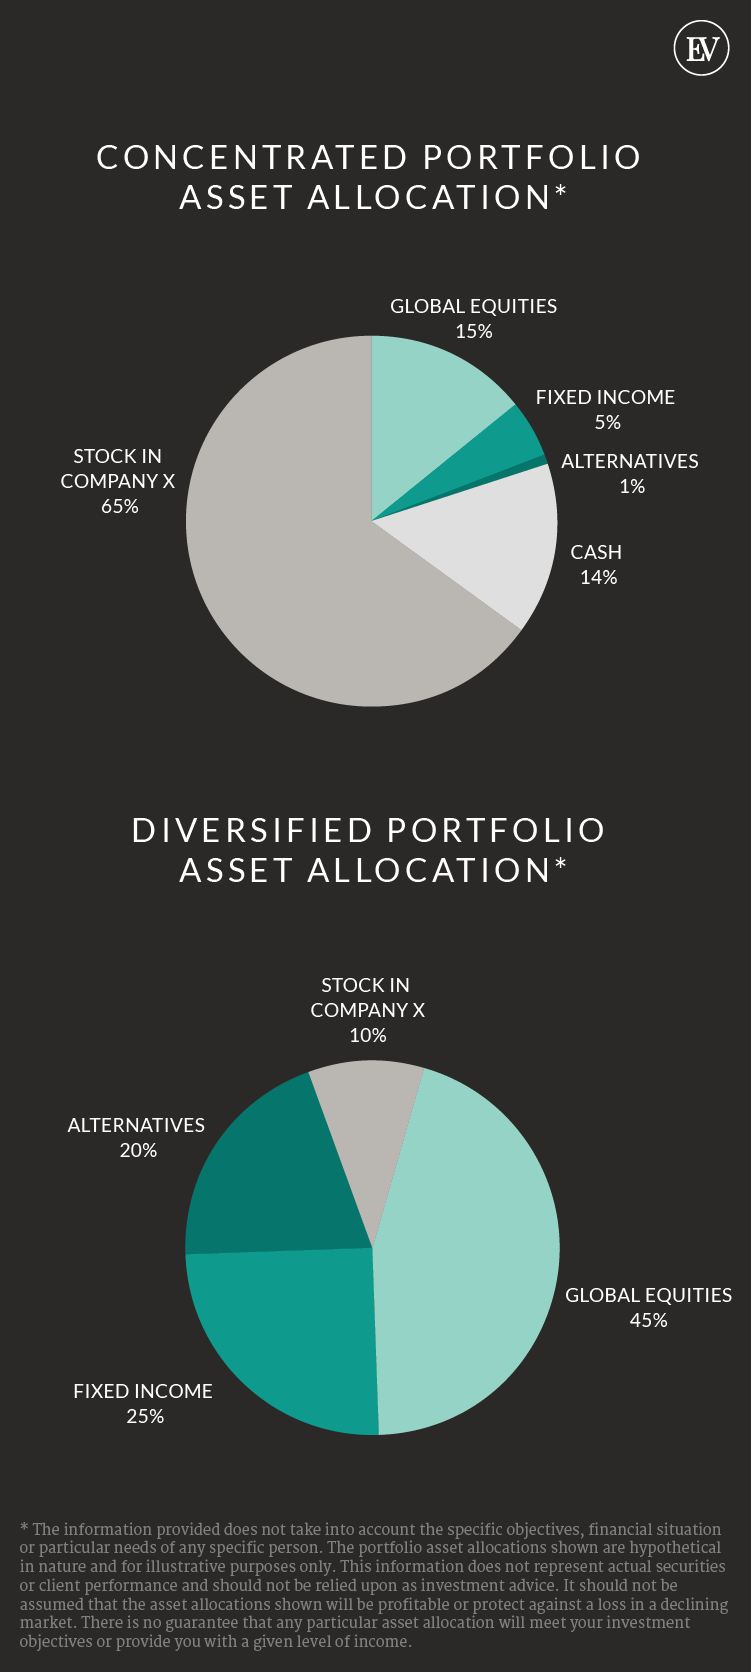 Diversifying concentrated stock positions